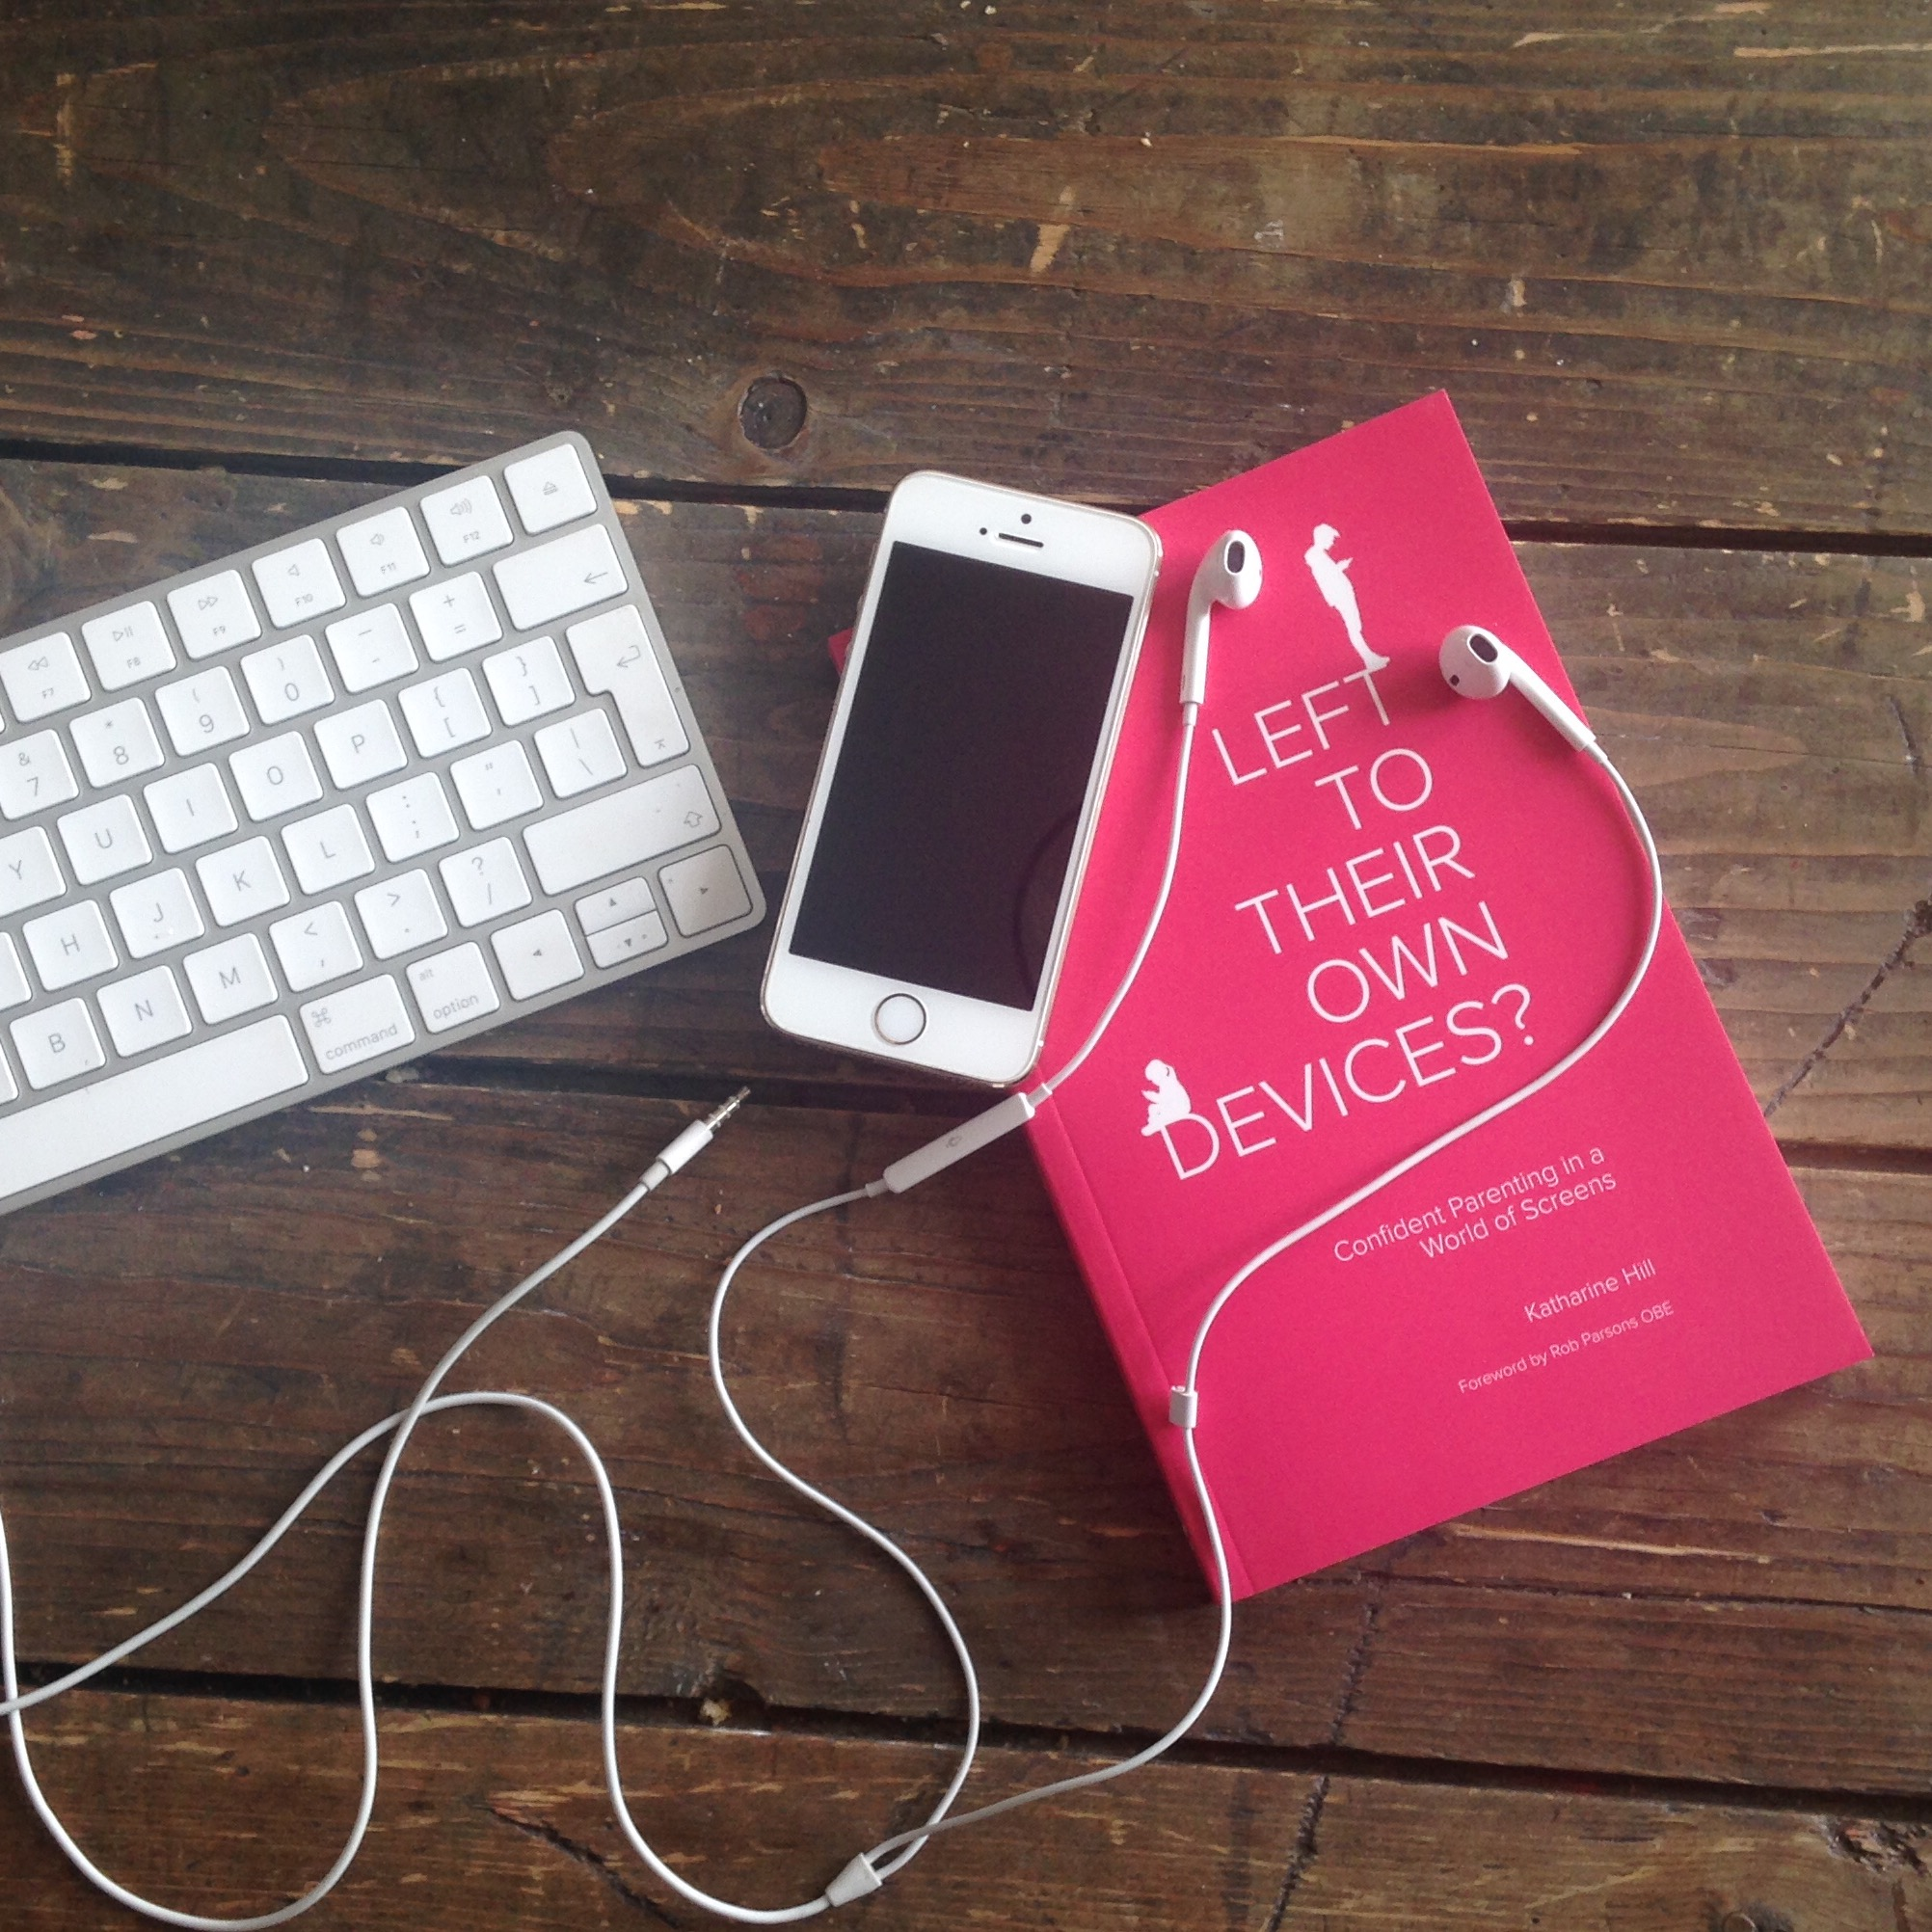 Book Review: Left to Their Own Devices?